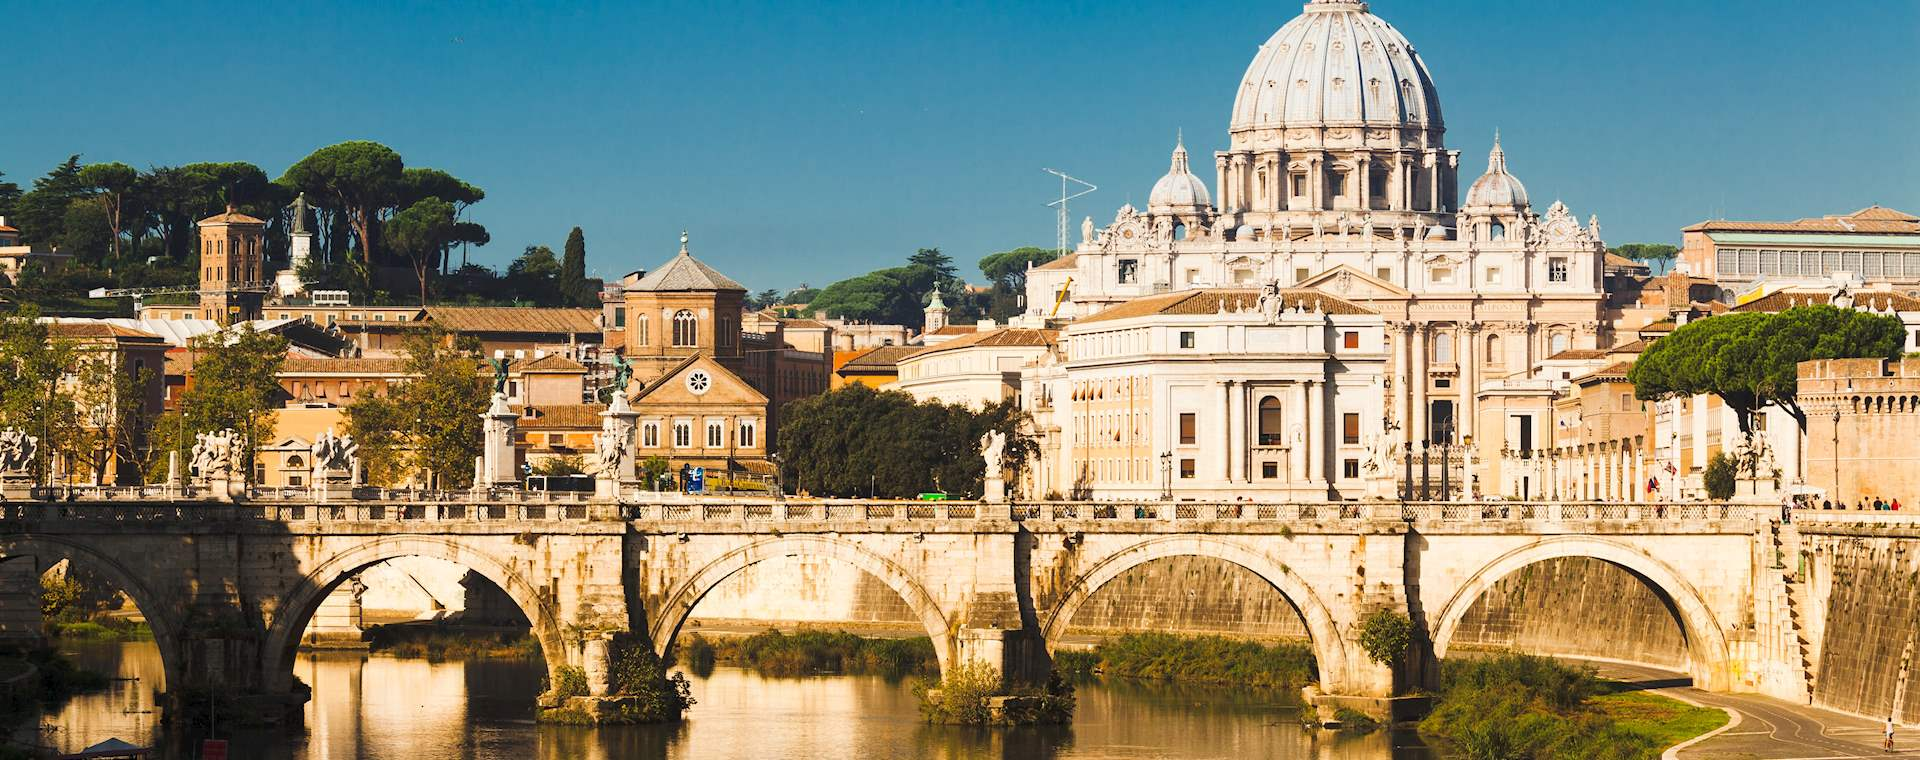 Full-Day Vatican Tour with Major Basilicas & Sistine Chapel